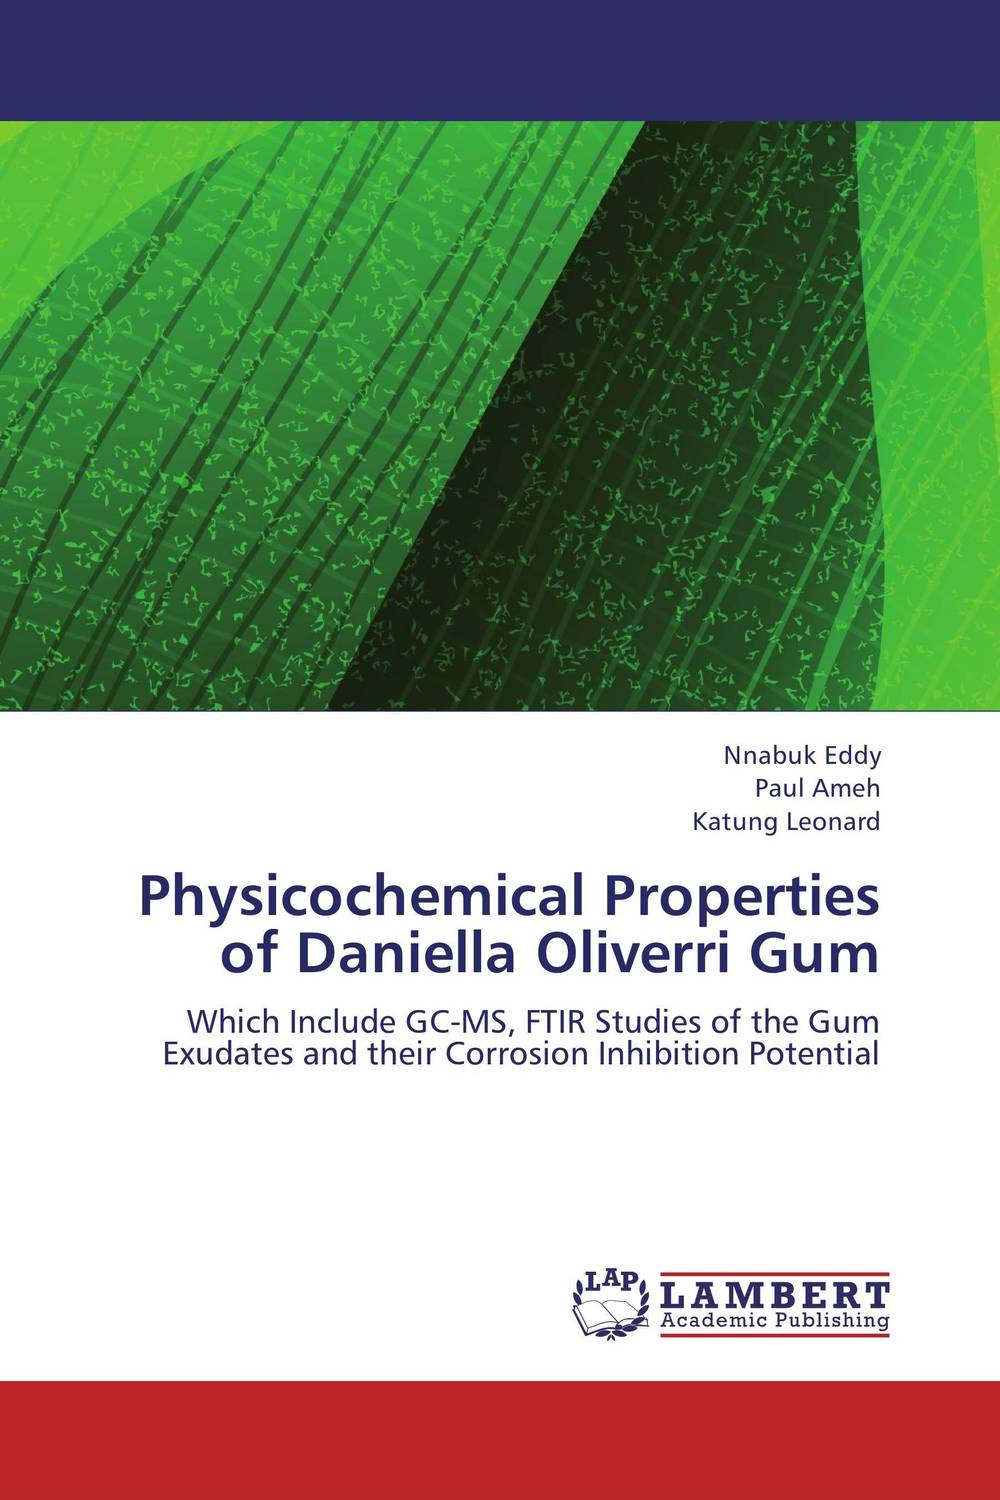 Physicochemical Properties of Daniella Oliverri Gum parnas bibliotheca microbiologica brucella phages properties and application